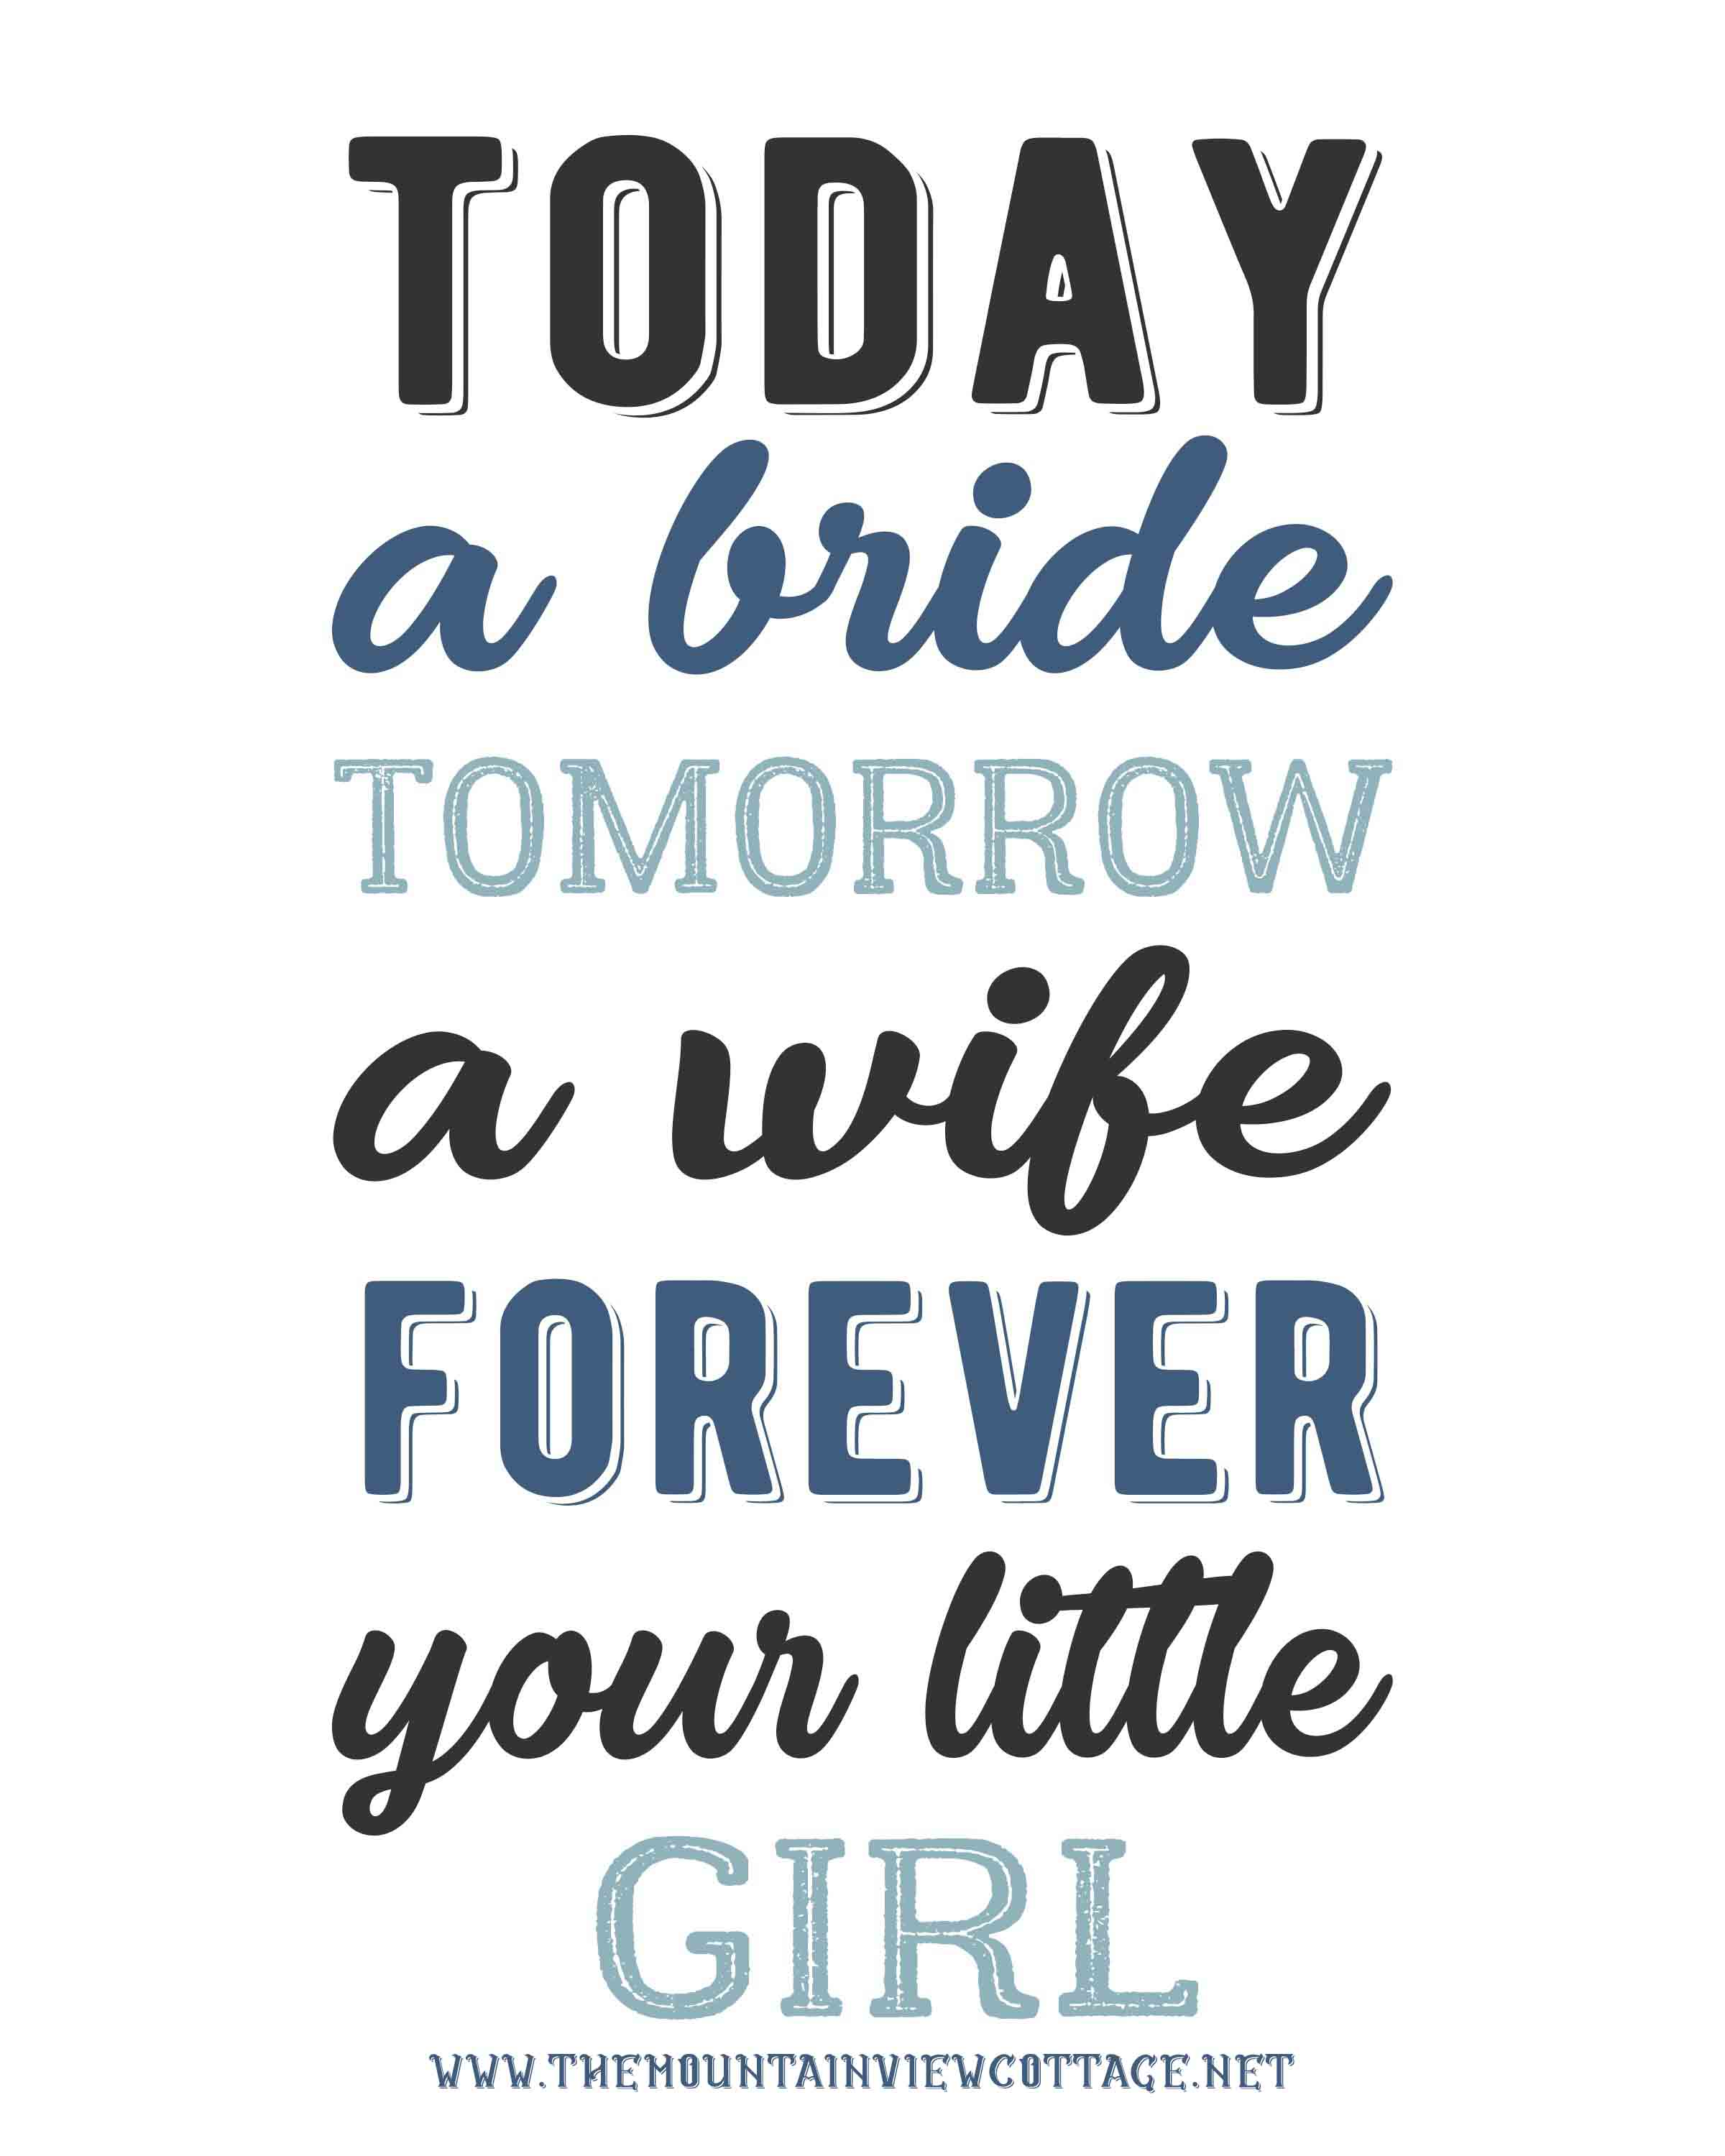 Dad quotes from daughter-father of the bride quotes-quotes from daughter to father-good father quotes-today a bride tomorrow a wife forever your little girl